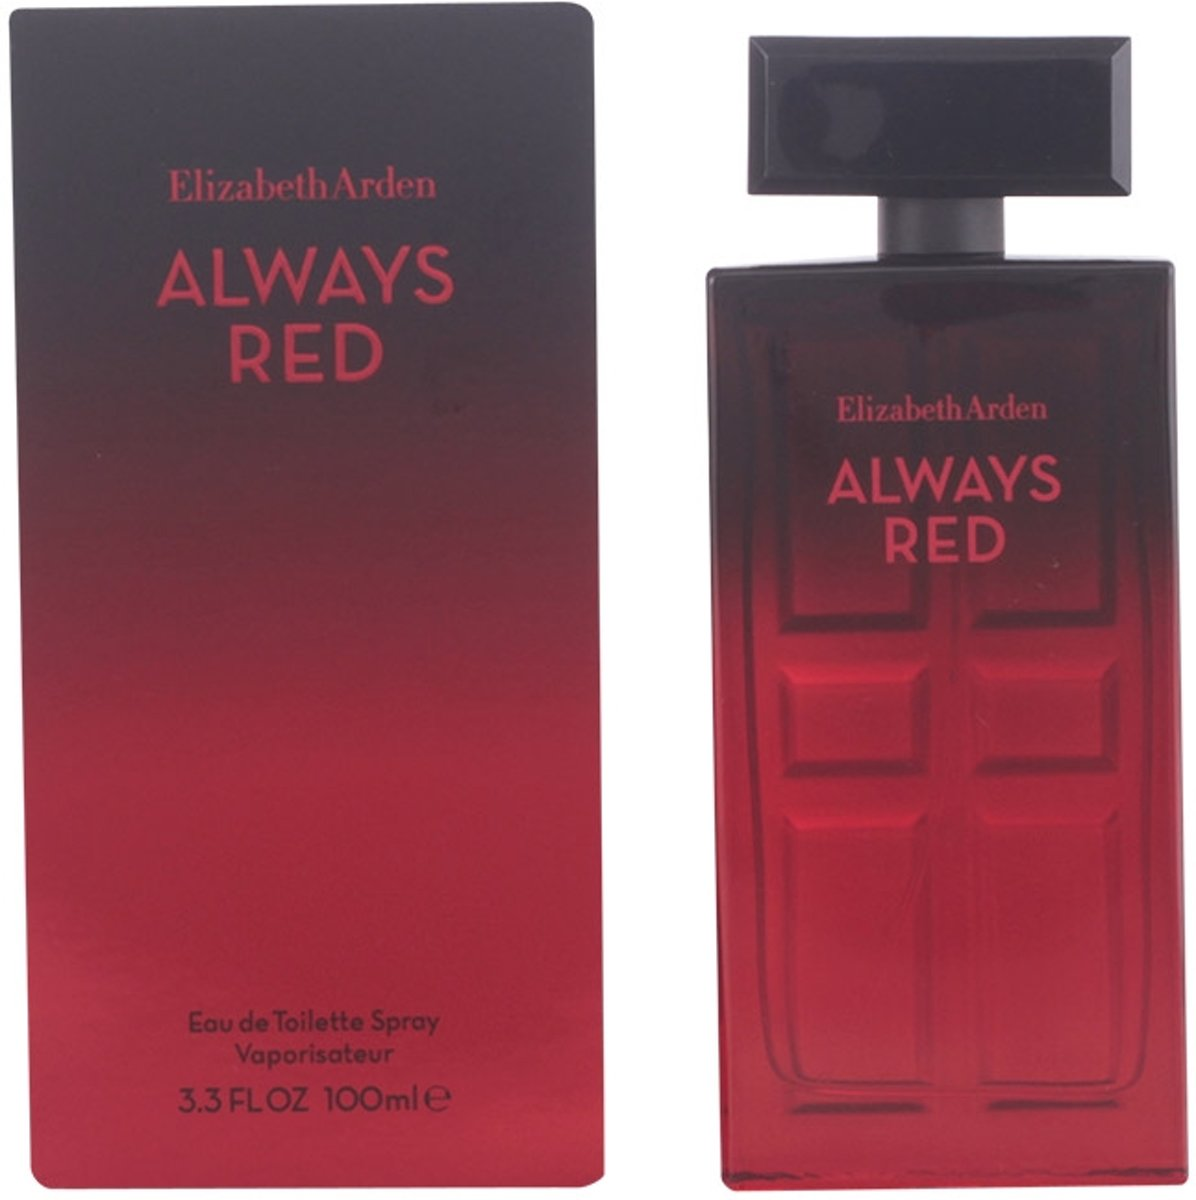 Elizabeth Arden Eau De Toilette Always Red 100 ml - Voor Vrouwen